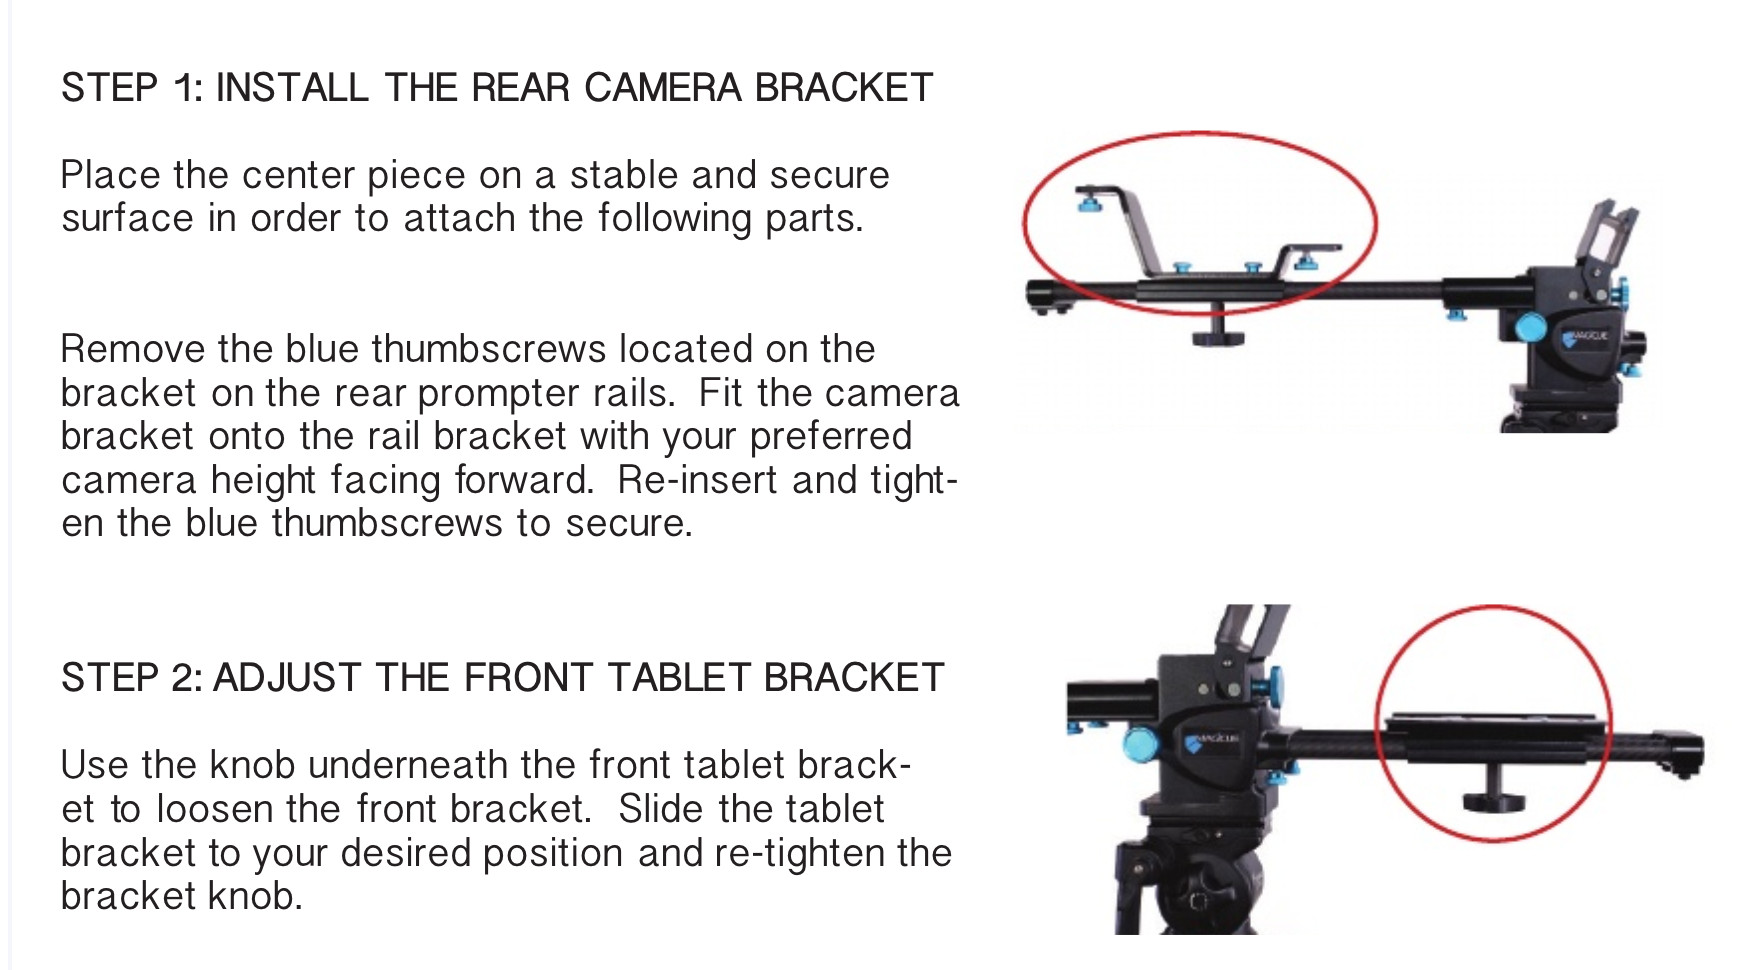 iPad Teleprompter  Rental - Assembly Instructions 1